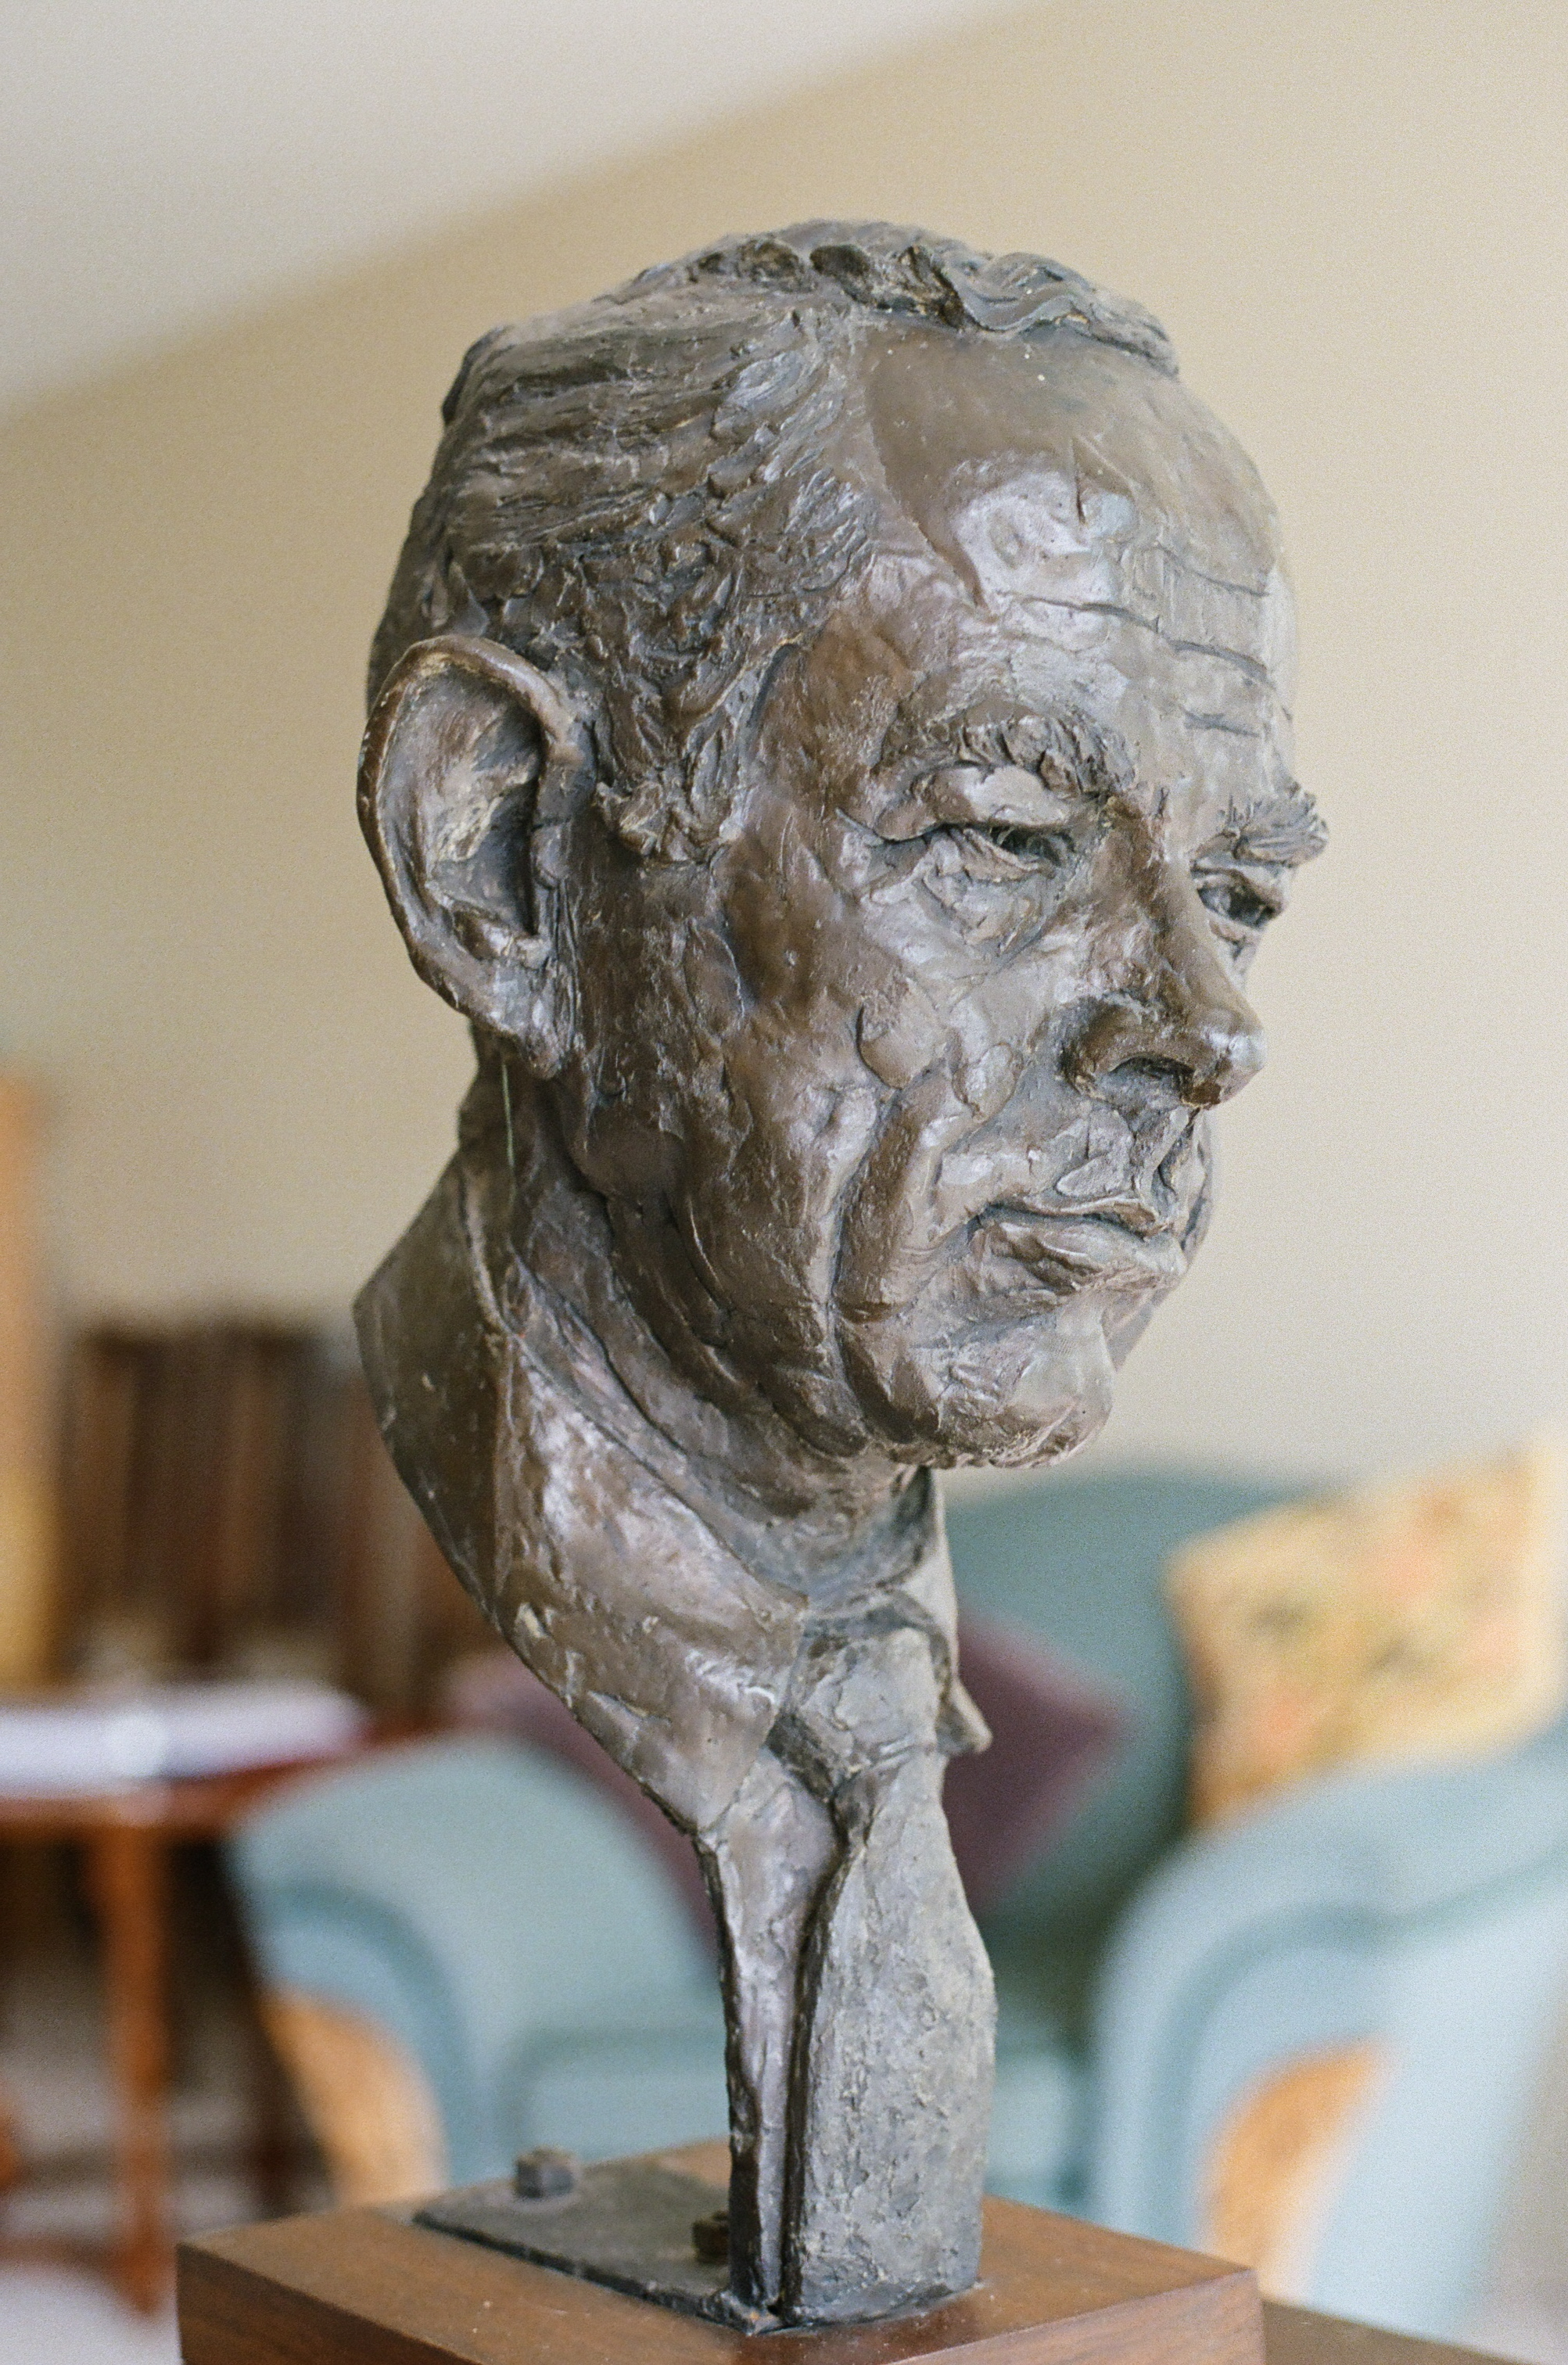 Photo courtesy Gina Page. Bust of Wil Hudson by Keith Shields